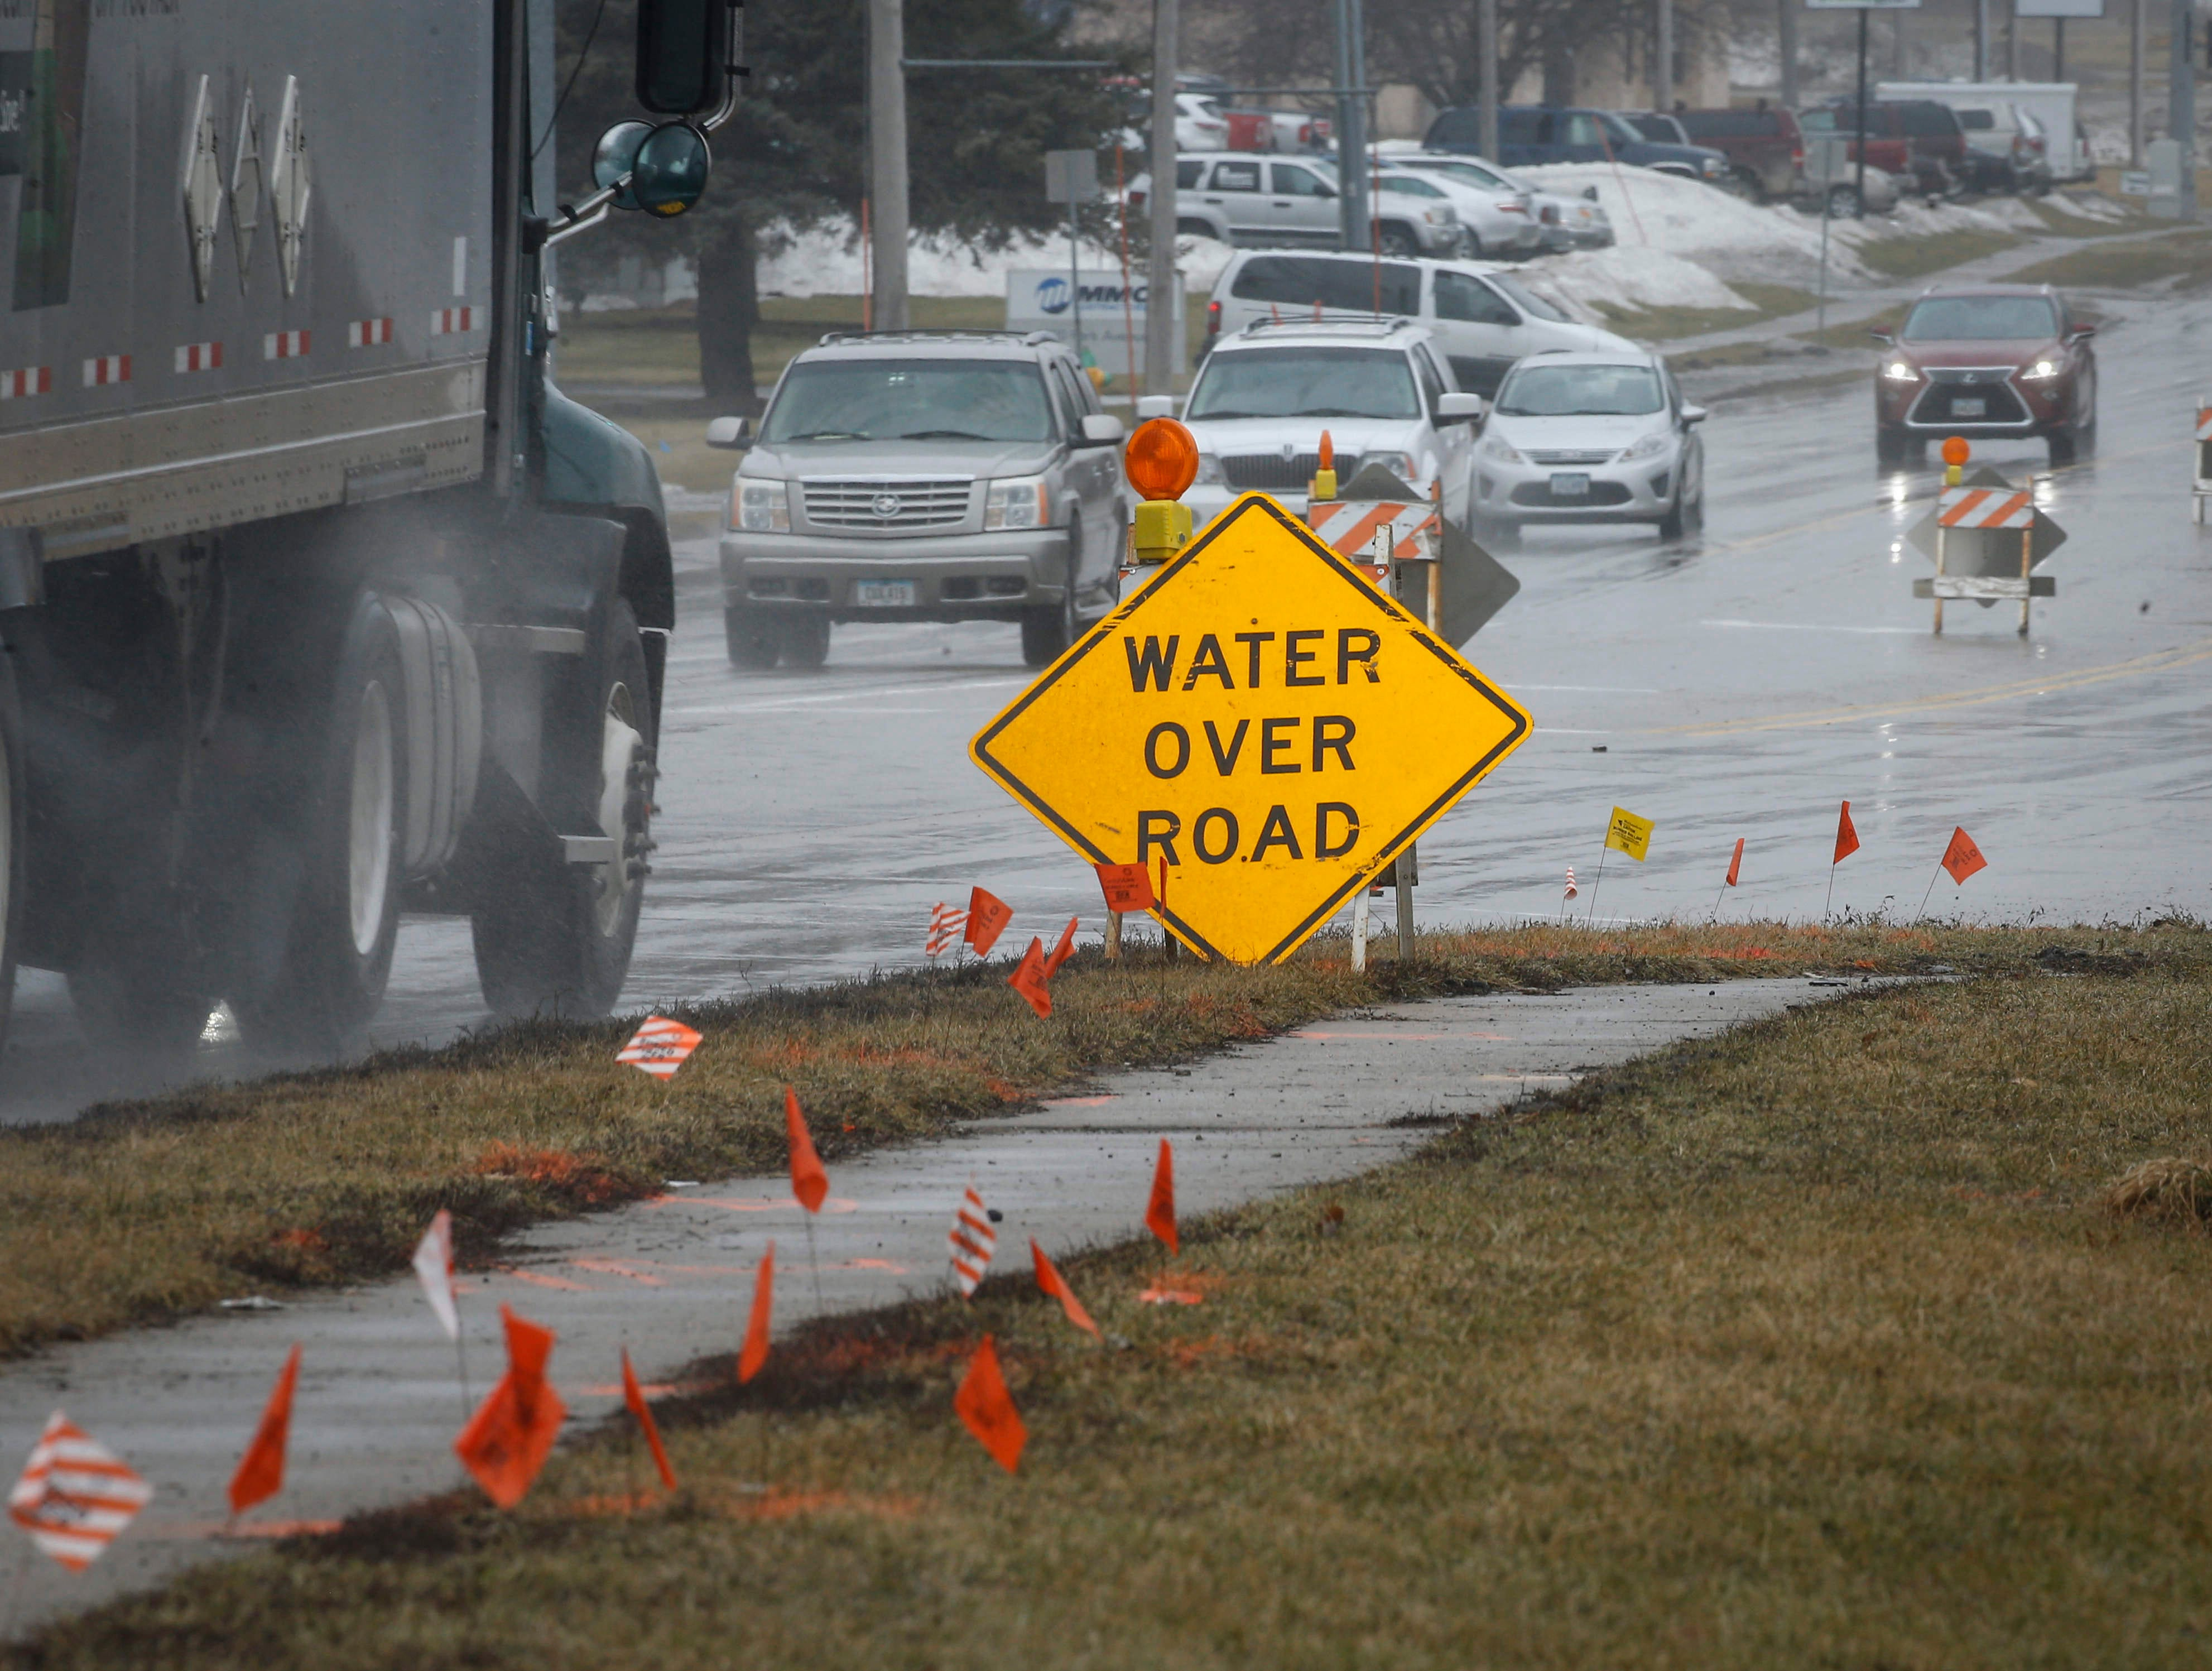 Signs warn motorists of high water on Park Ave. in West Des Moines on Thursday, March 14, 2019.